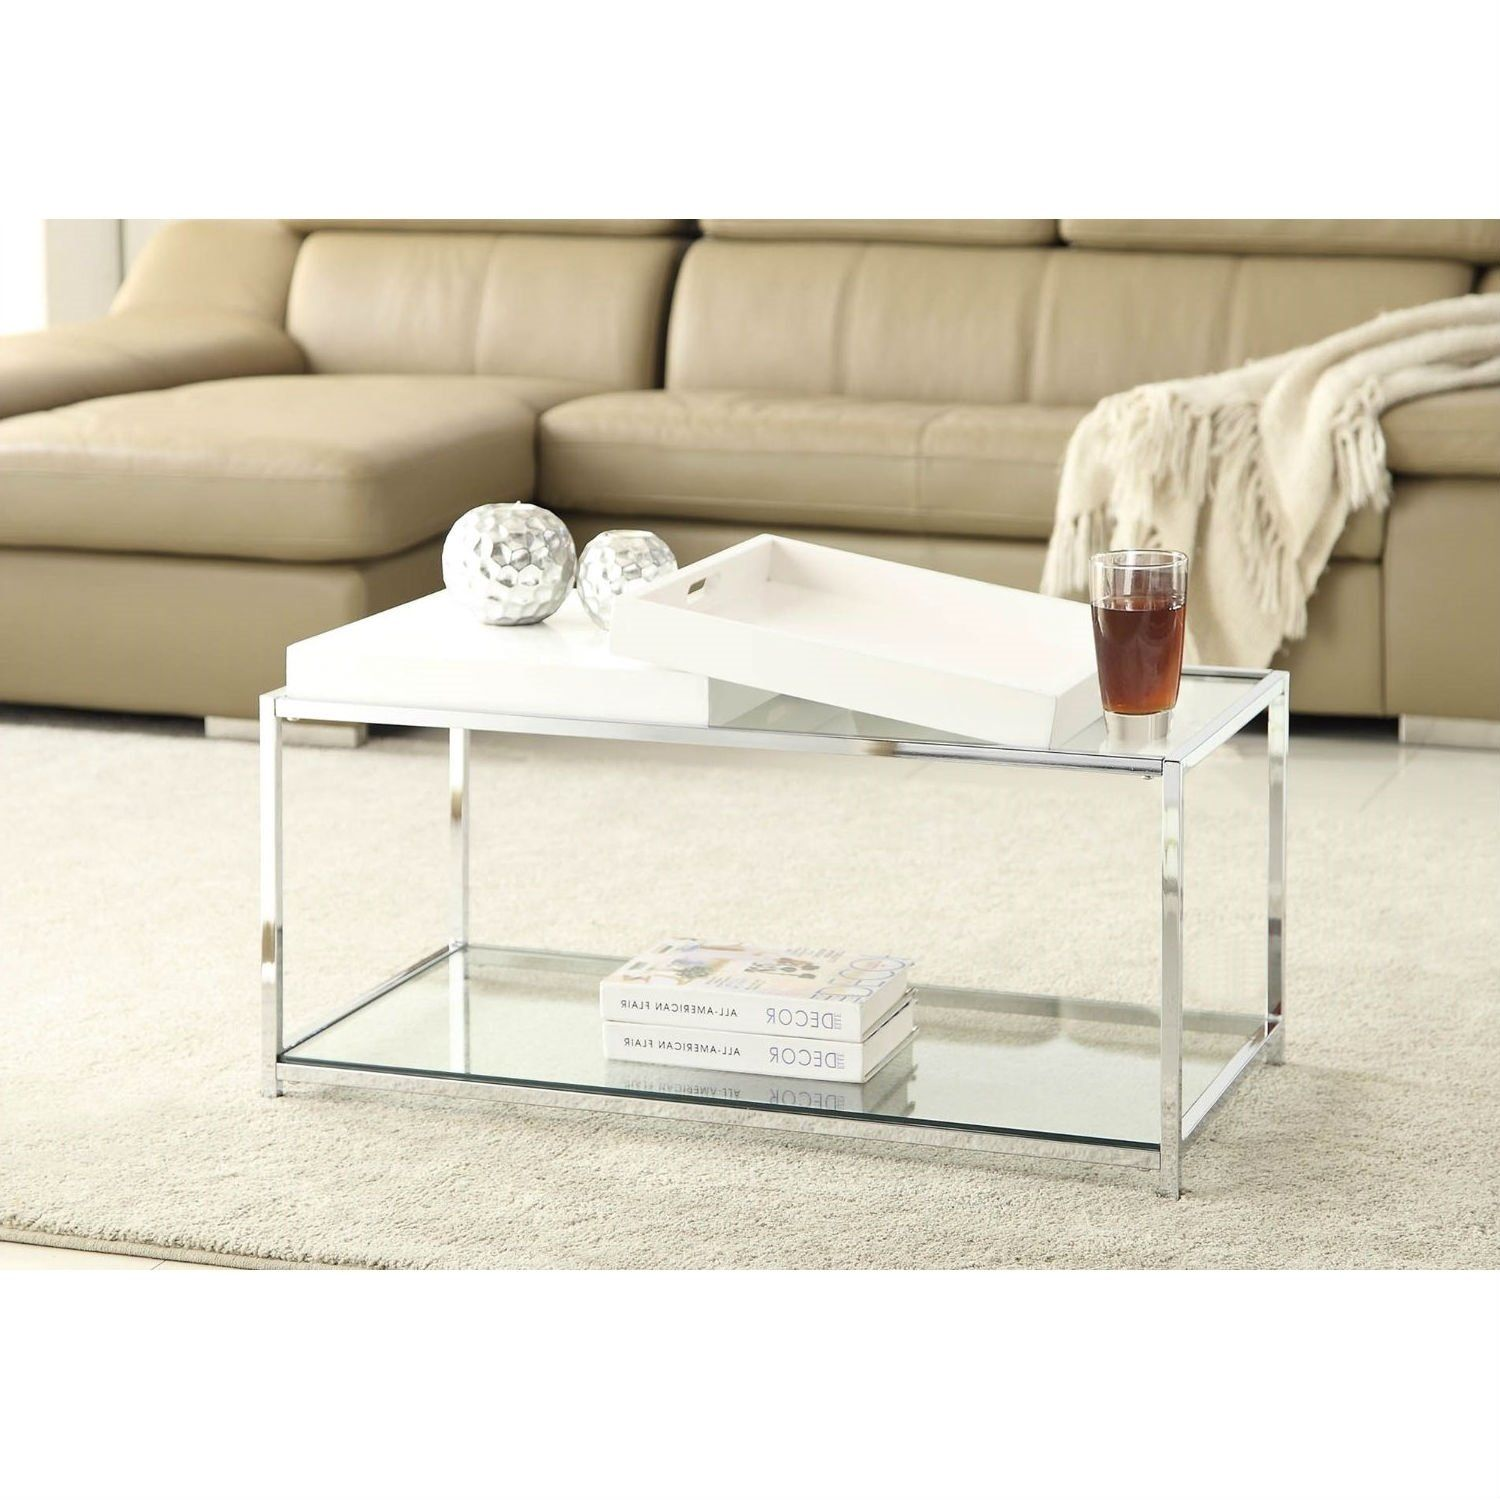 This Modern Chrome Metal Coffee Table With 2 White Removable Trays Combines  Urban Design And Multi Function Use. The Palm Beach Coffee Table Features  Two ...